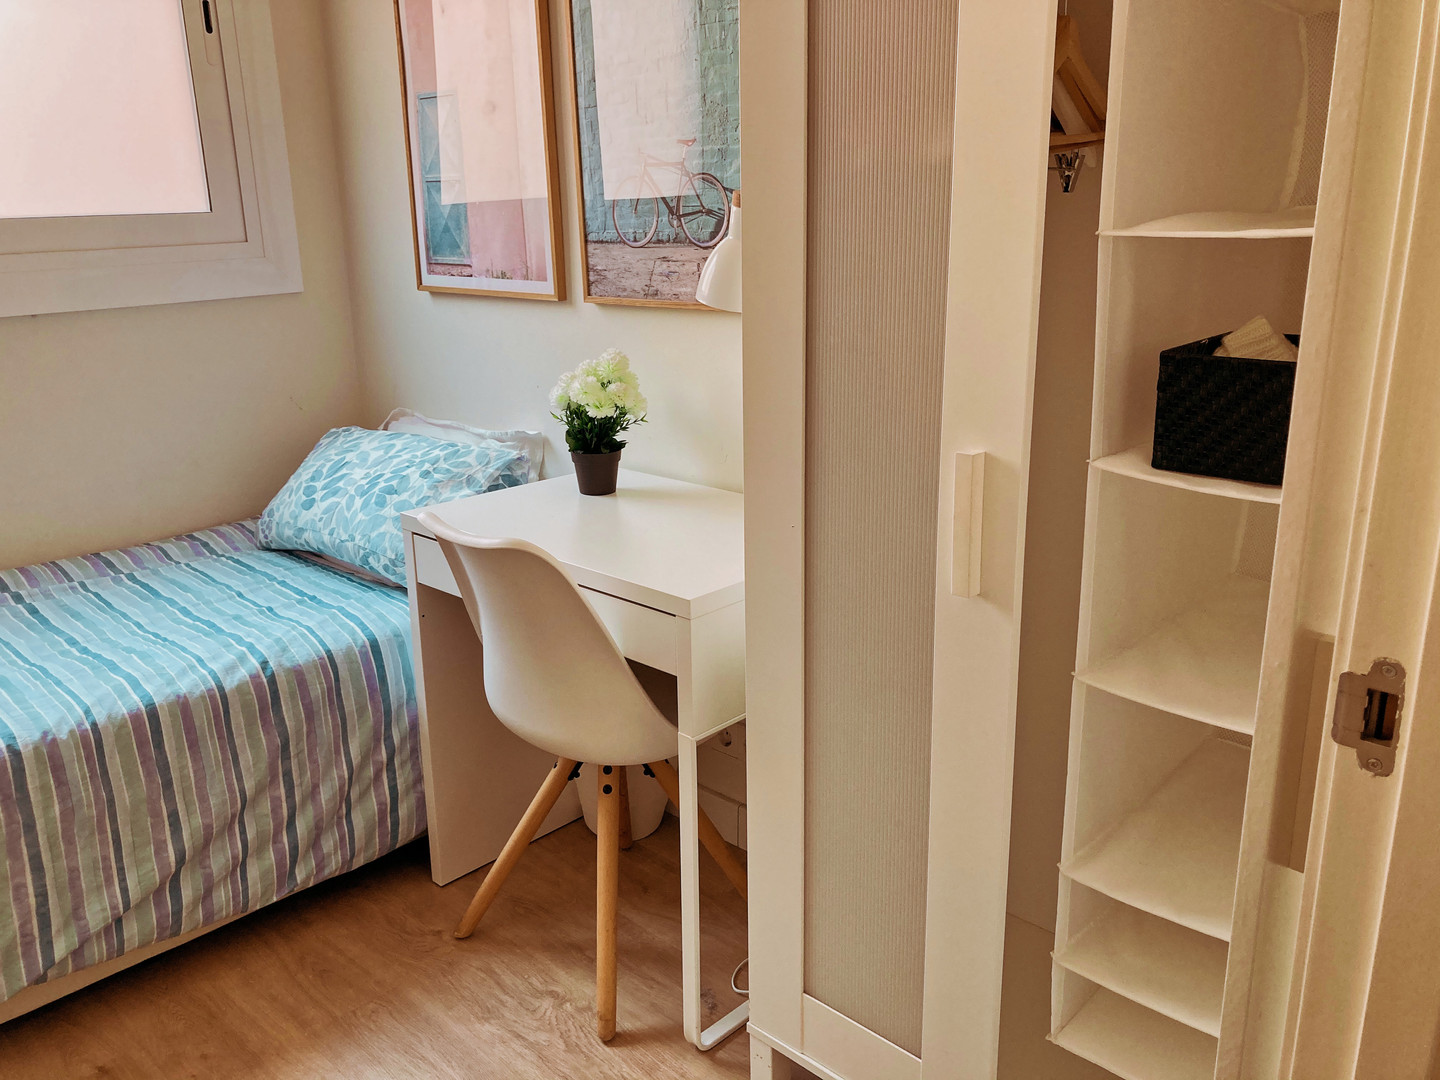 Enso Co-living in Barcelona